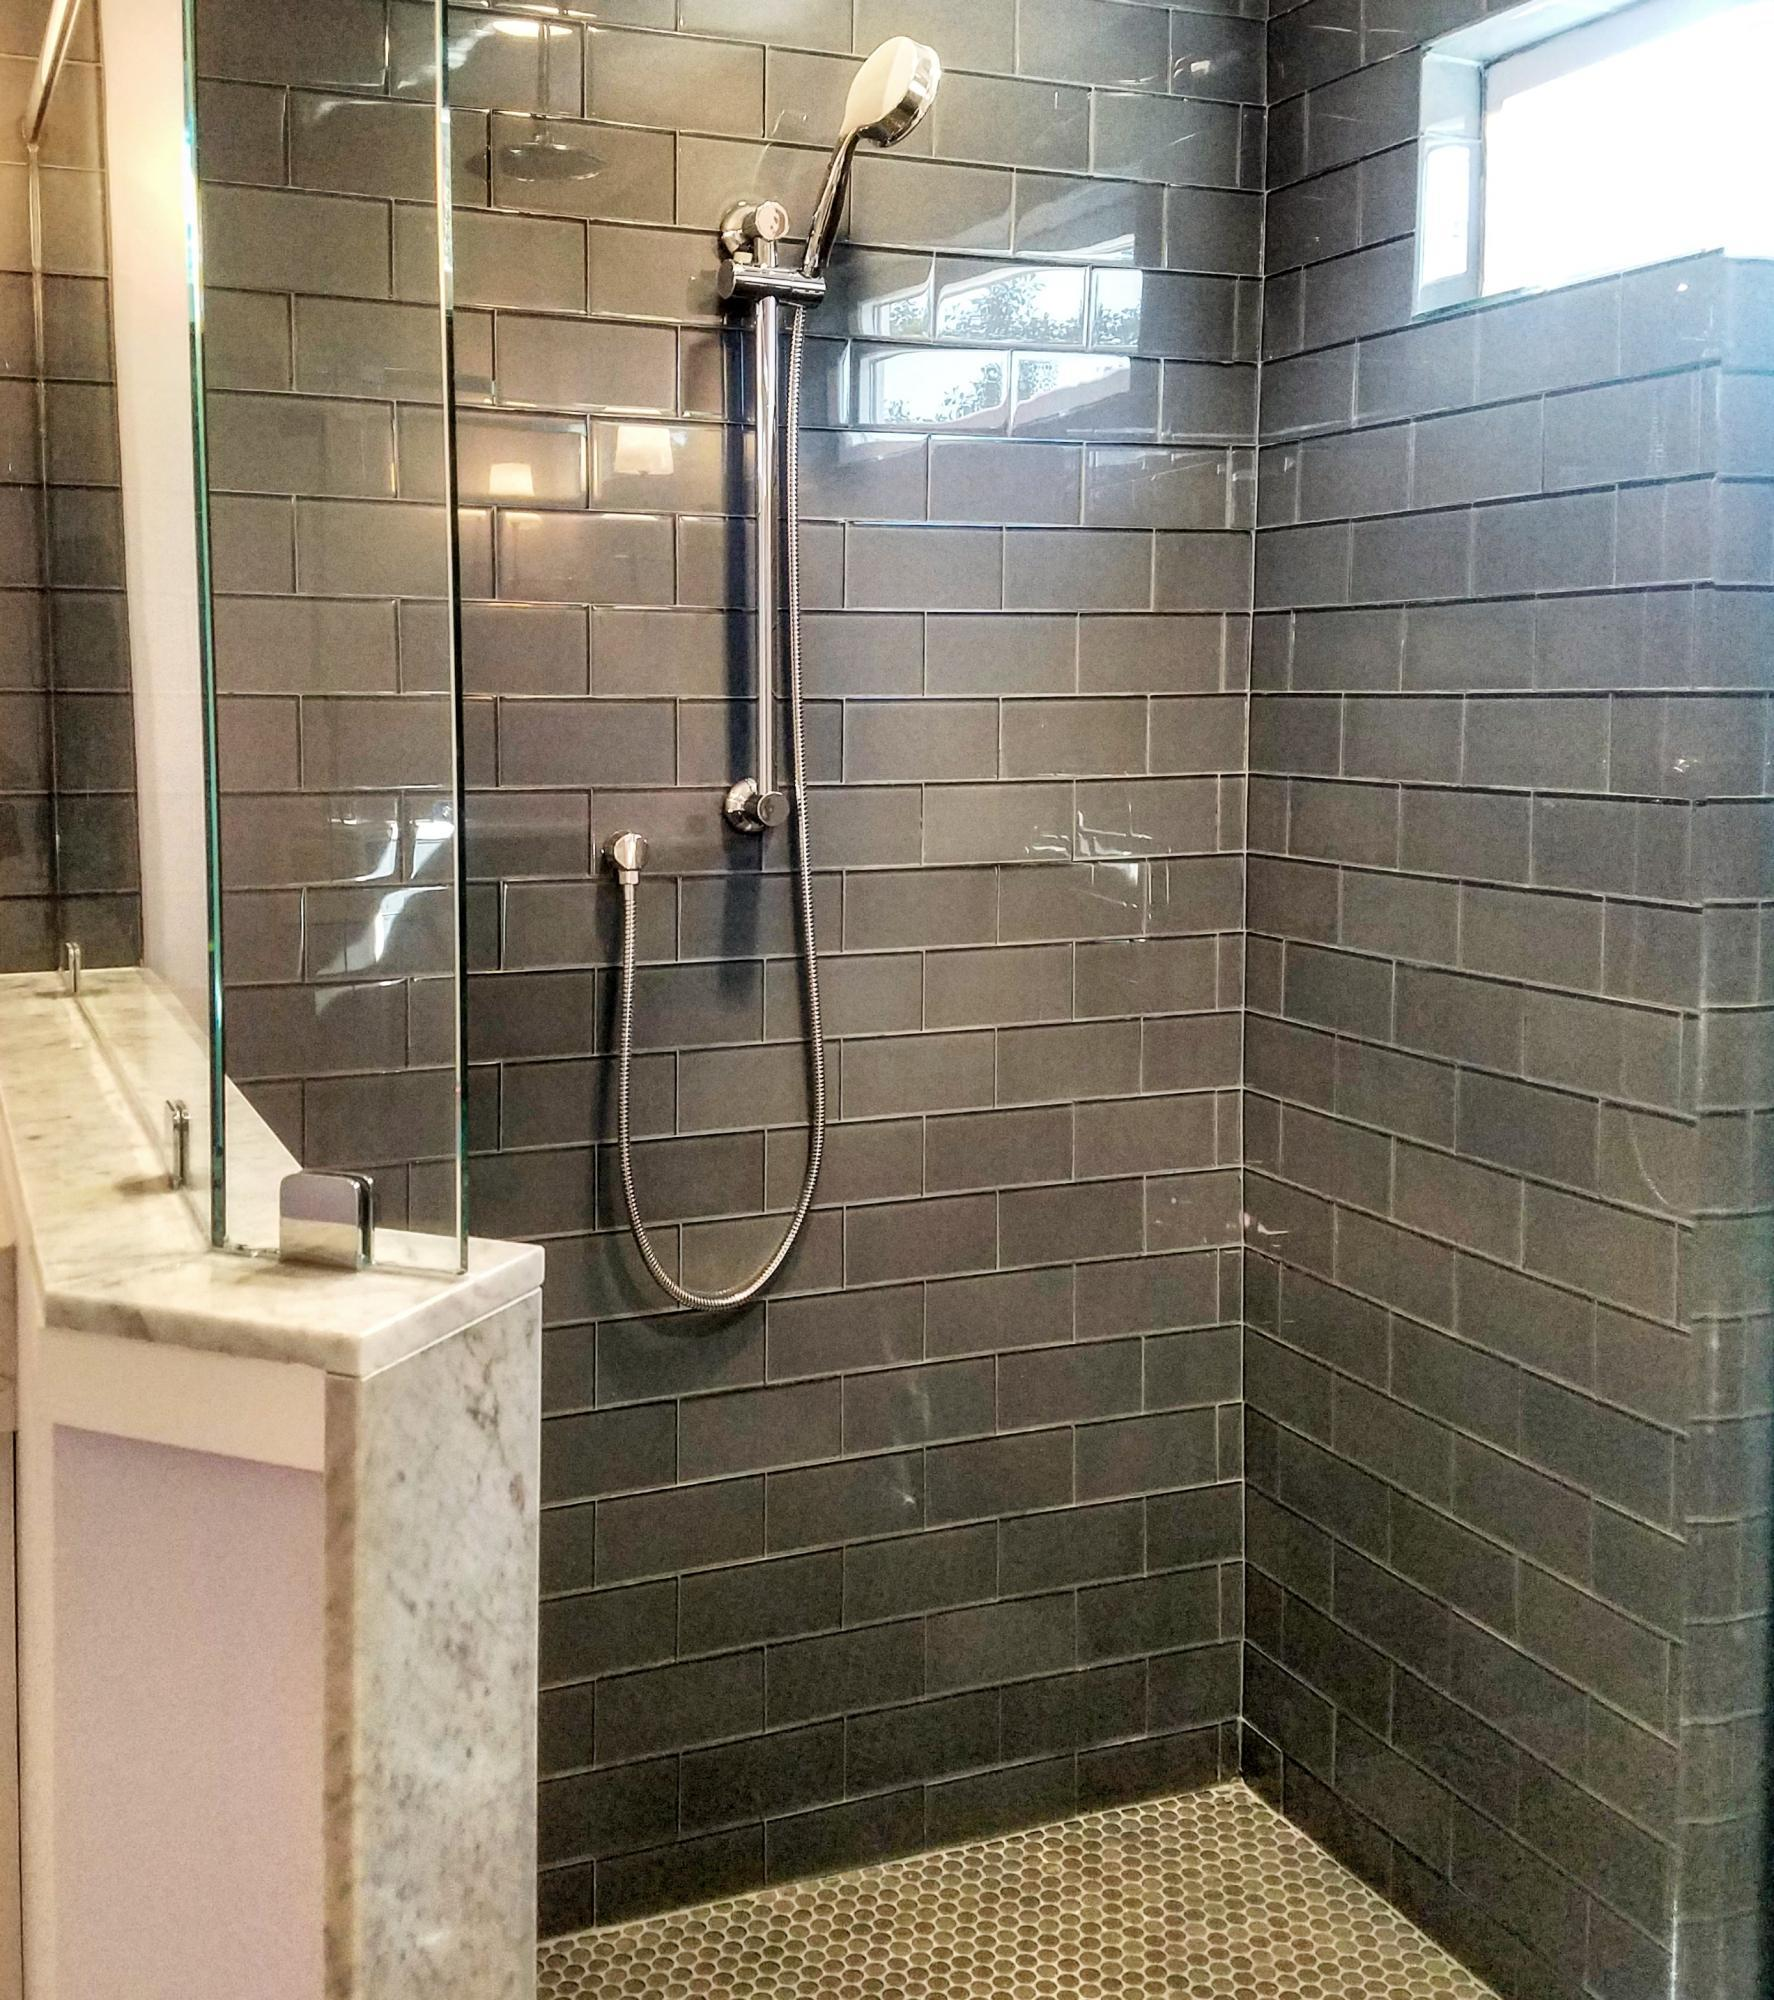 Bathroom featured in the Ossabaw By Konter Quality Homes in Savannah, GA